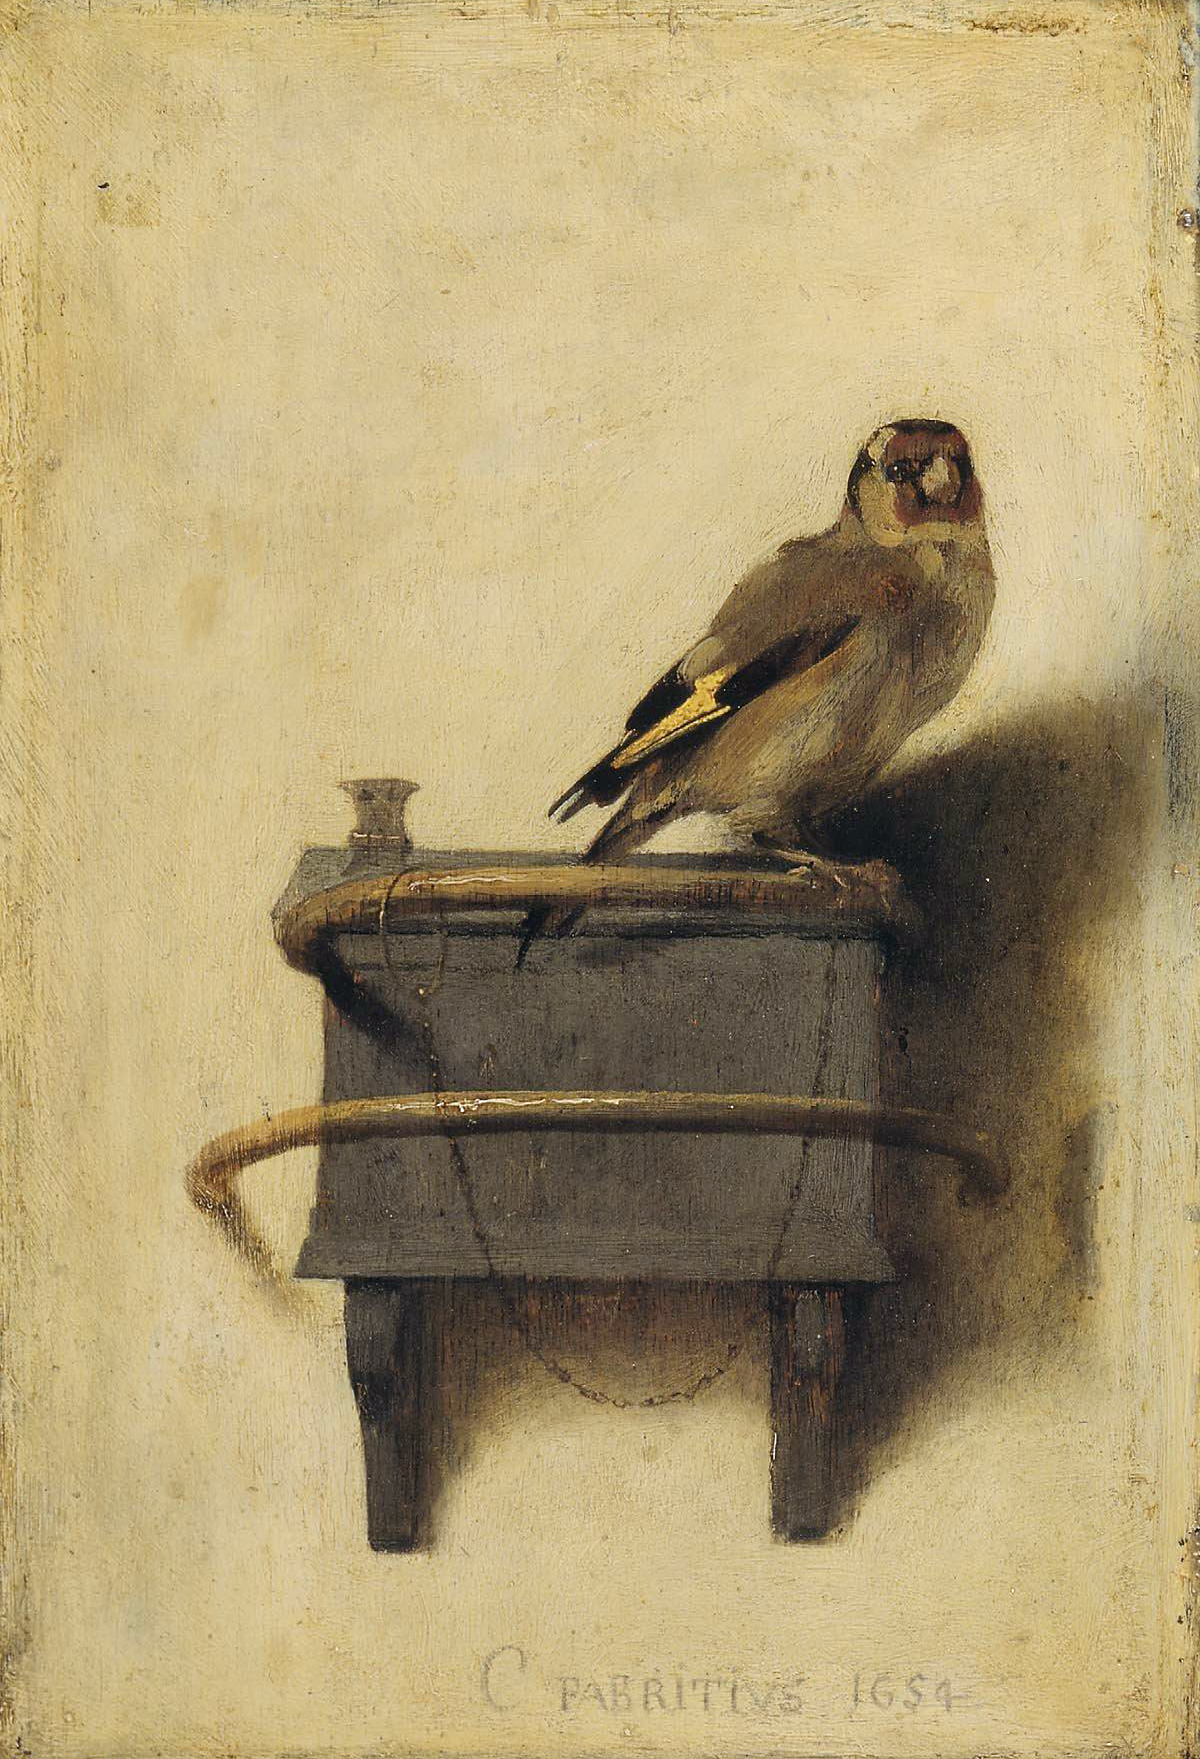 https://upload.wikimedia.org/wikipedia/commons/archive/6/64/20140620183253%21Fabritius-vink.jpg